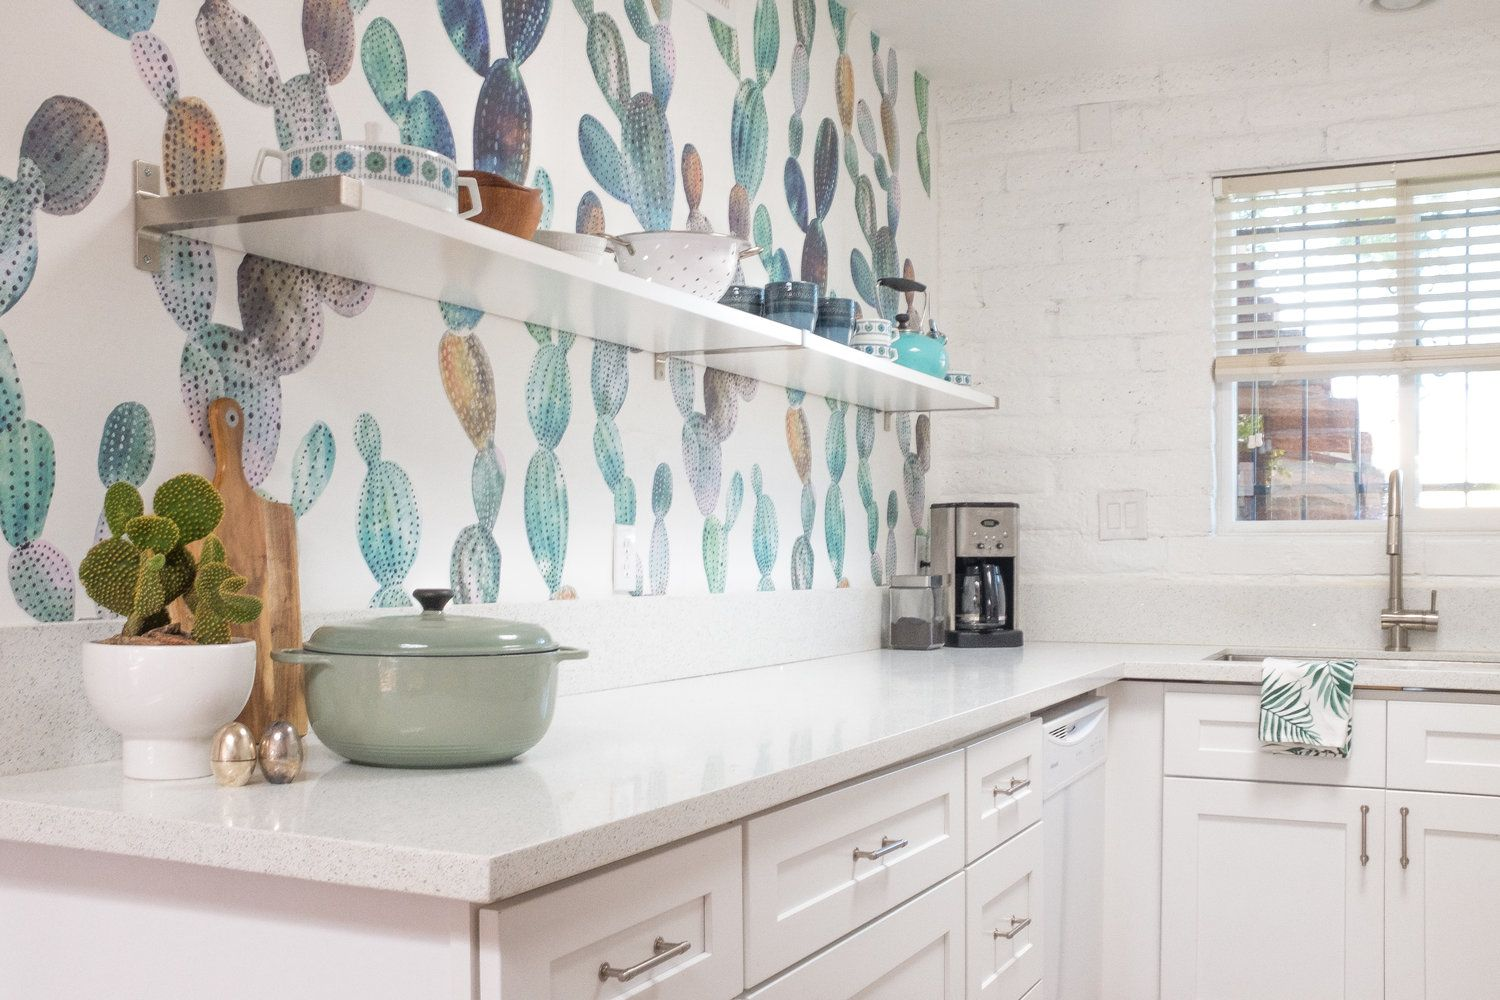 Cactus Wallpaper accent wall in a kitchen | Wallpaper | Pinterest ...